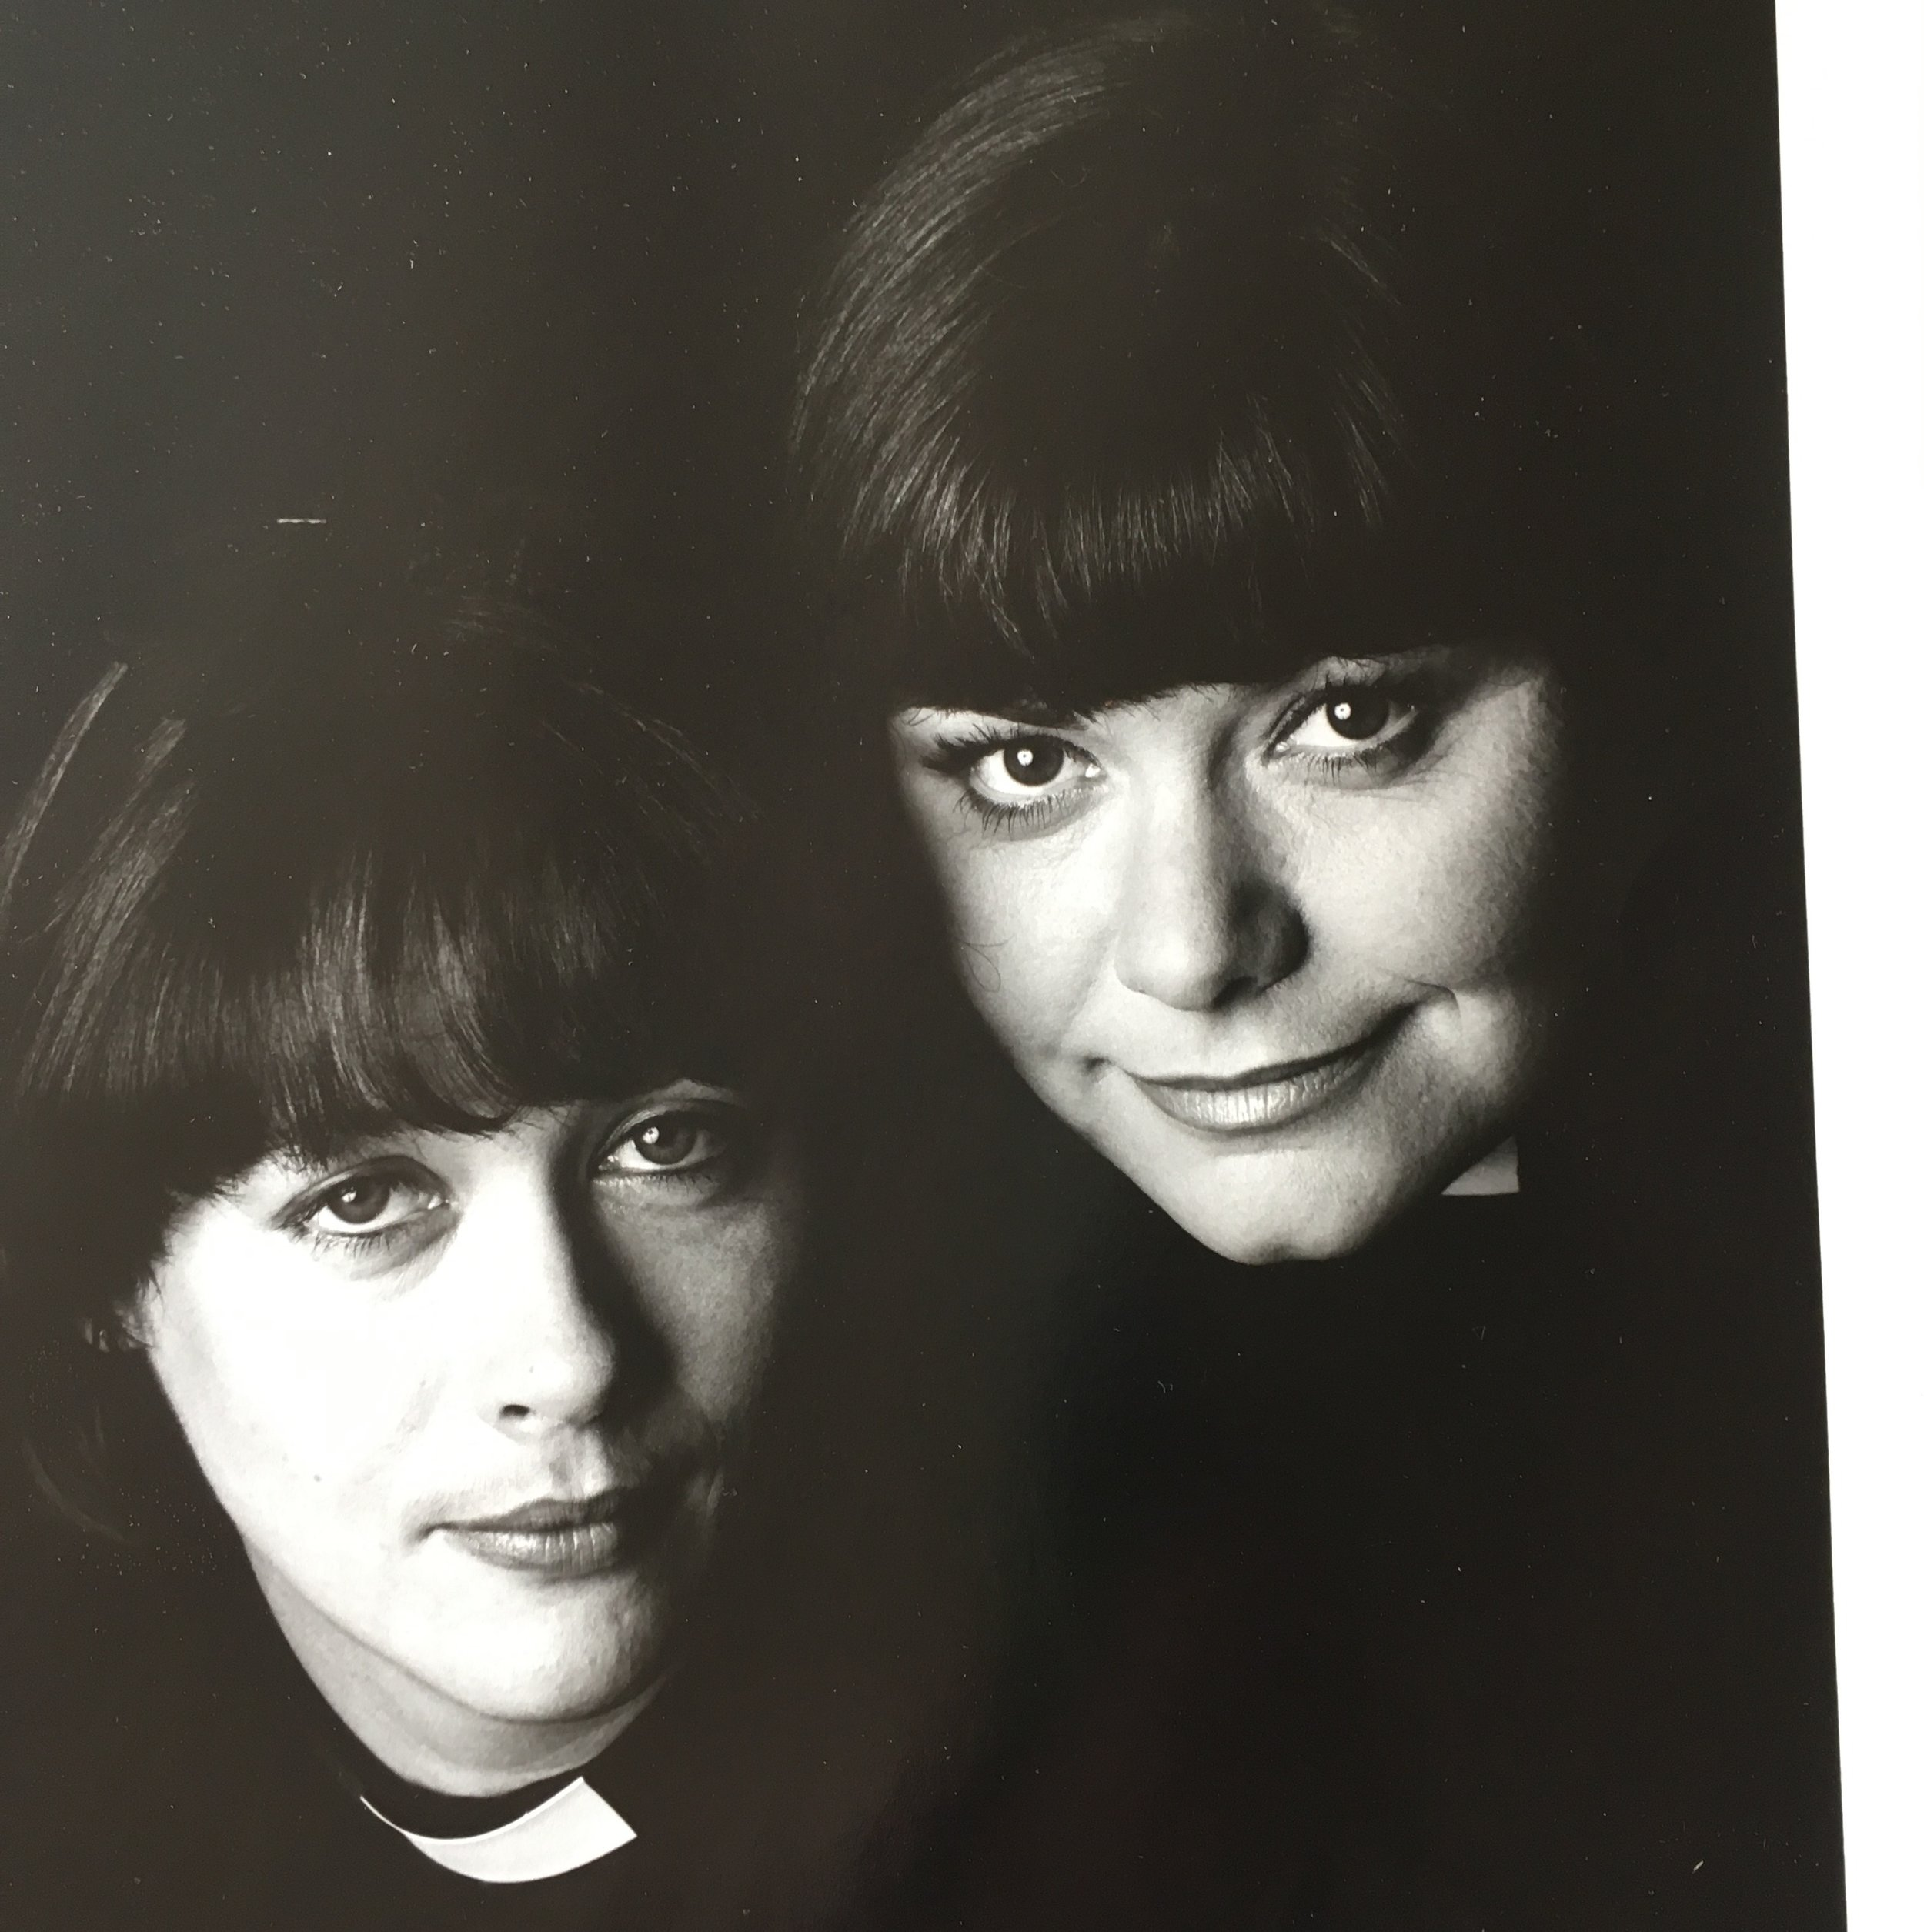 A photo of myself and Dawn French - Geraldine in  The   Vicar of Dibl  ey!